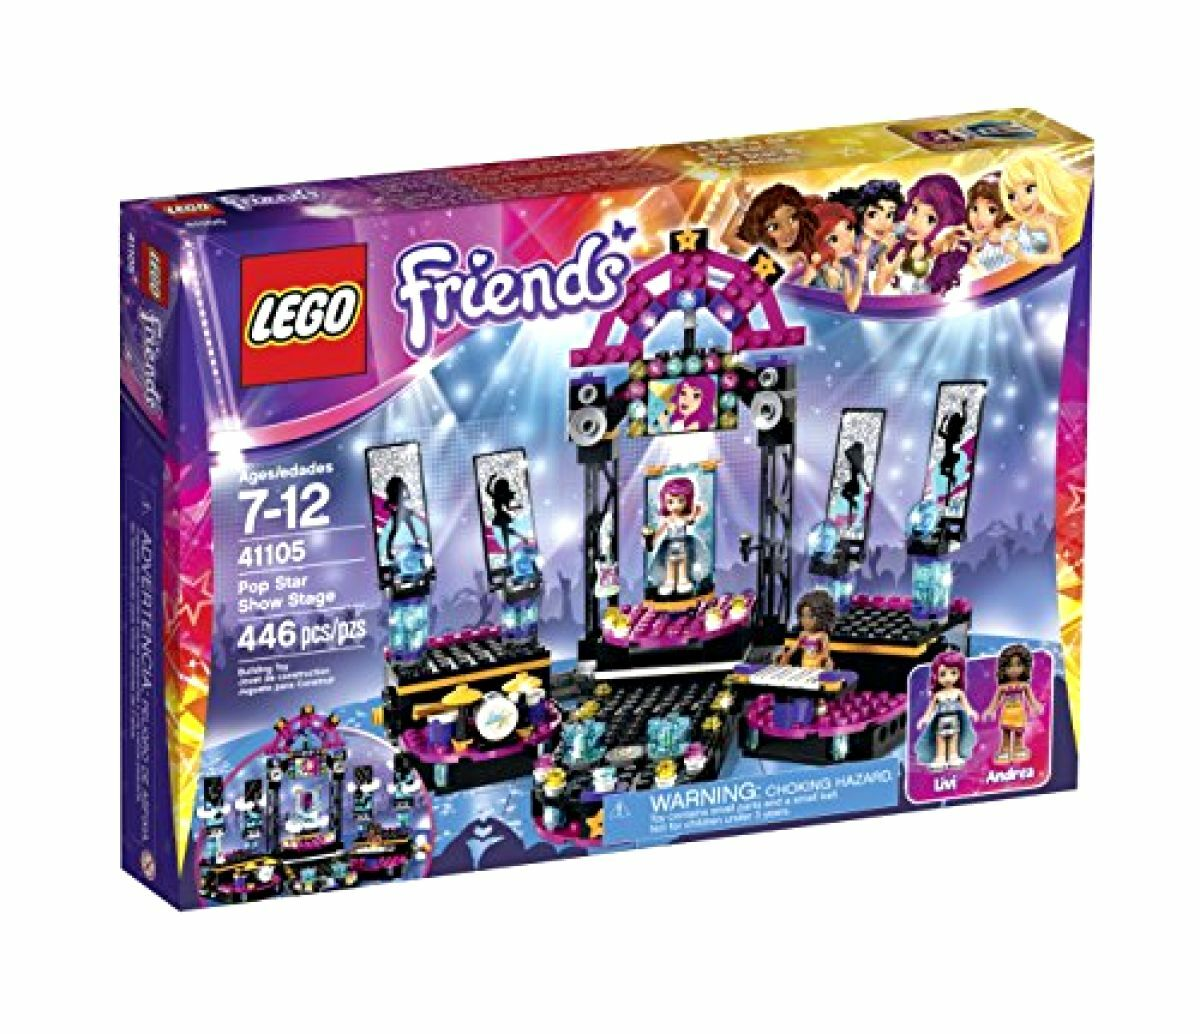 LEGO Friends - Pop Star Show Stage, Toy for girls 7-12 years old, NEW Gift fun